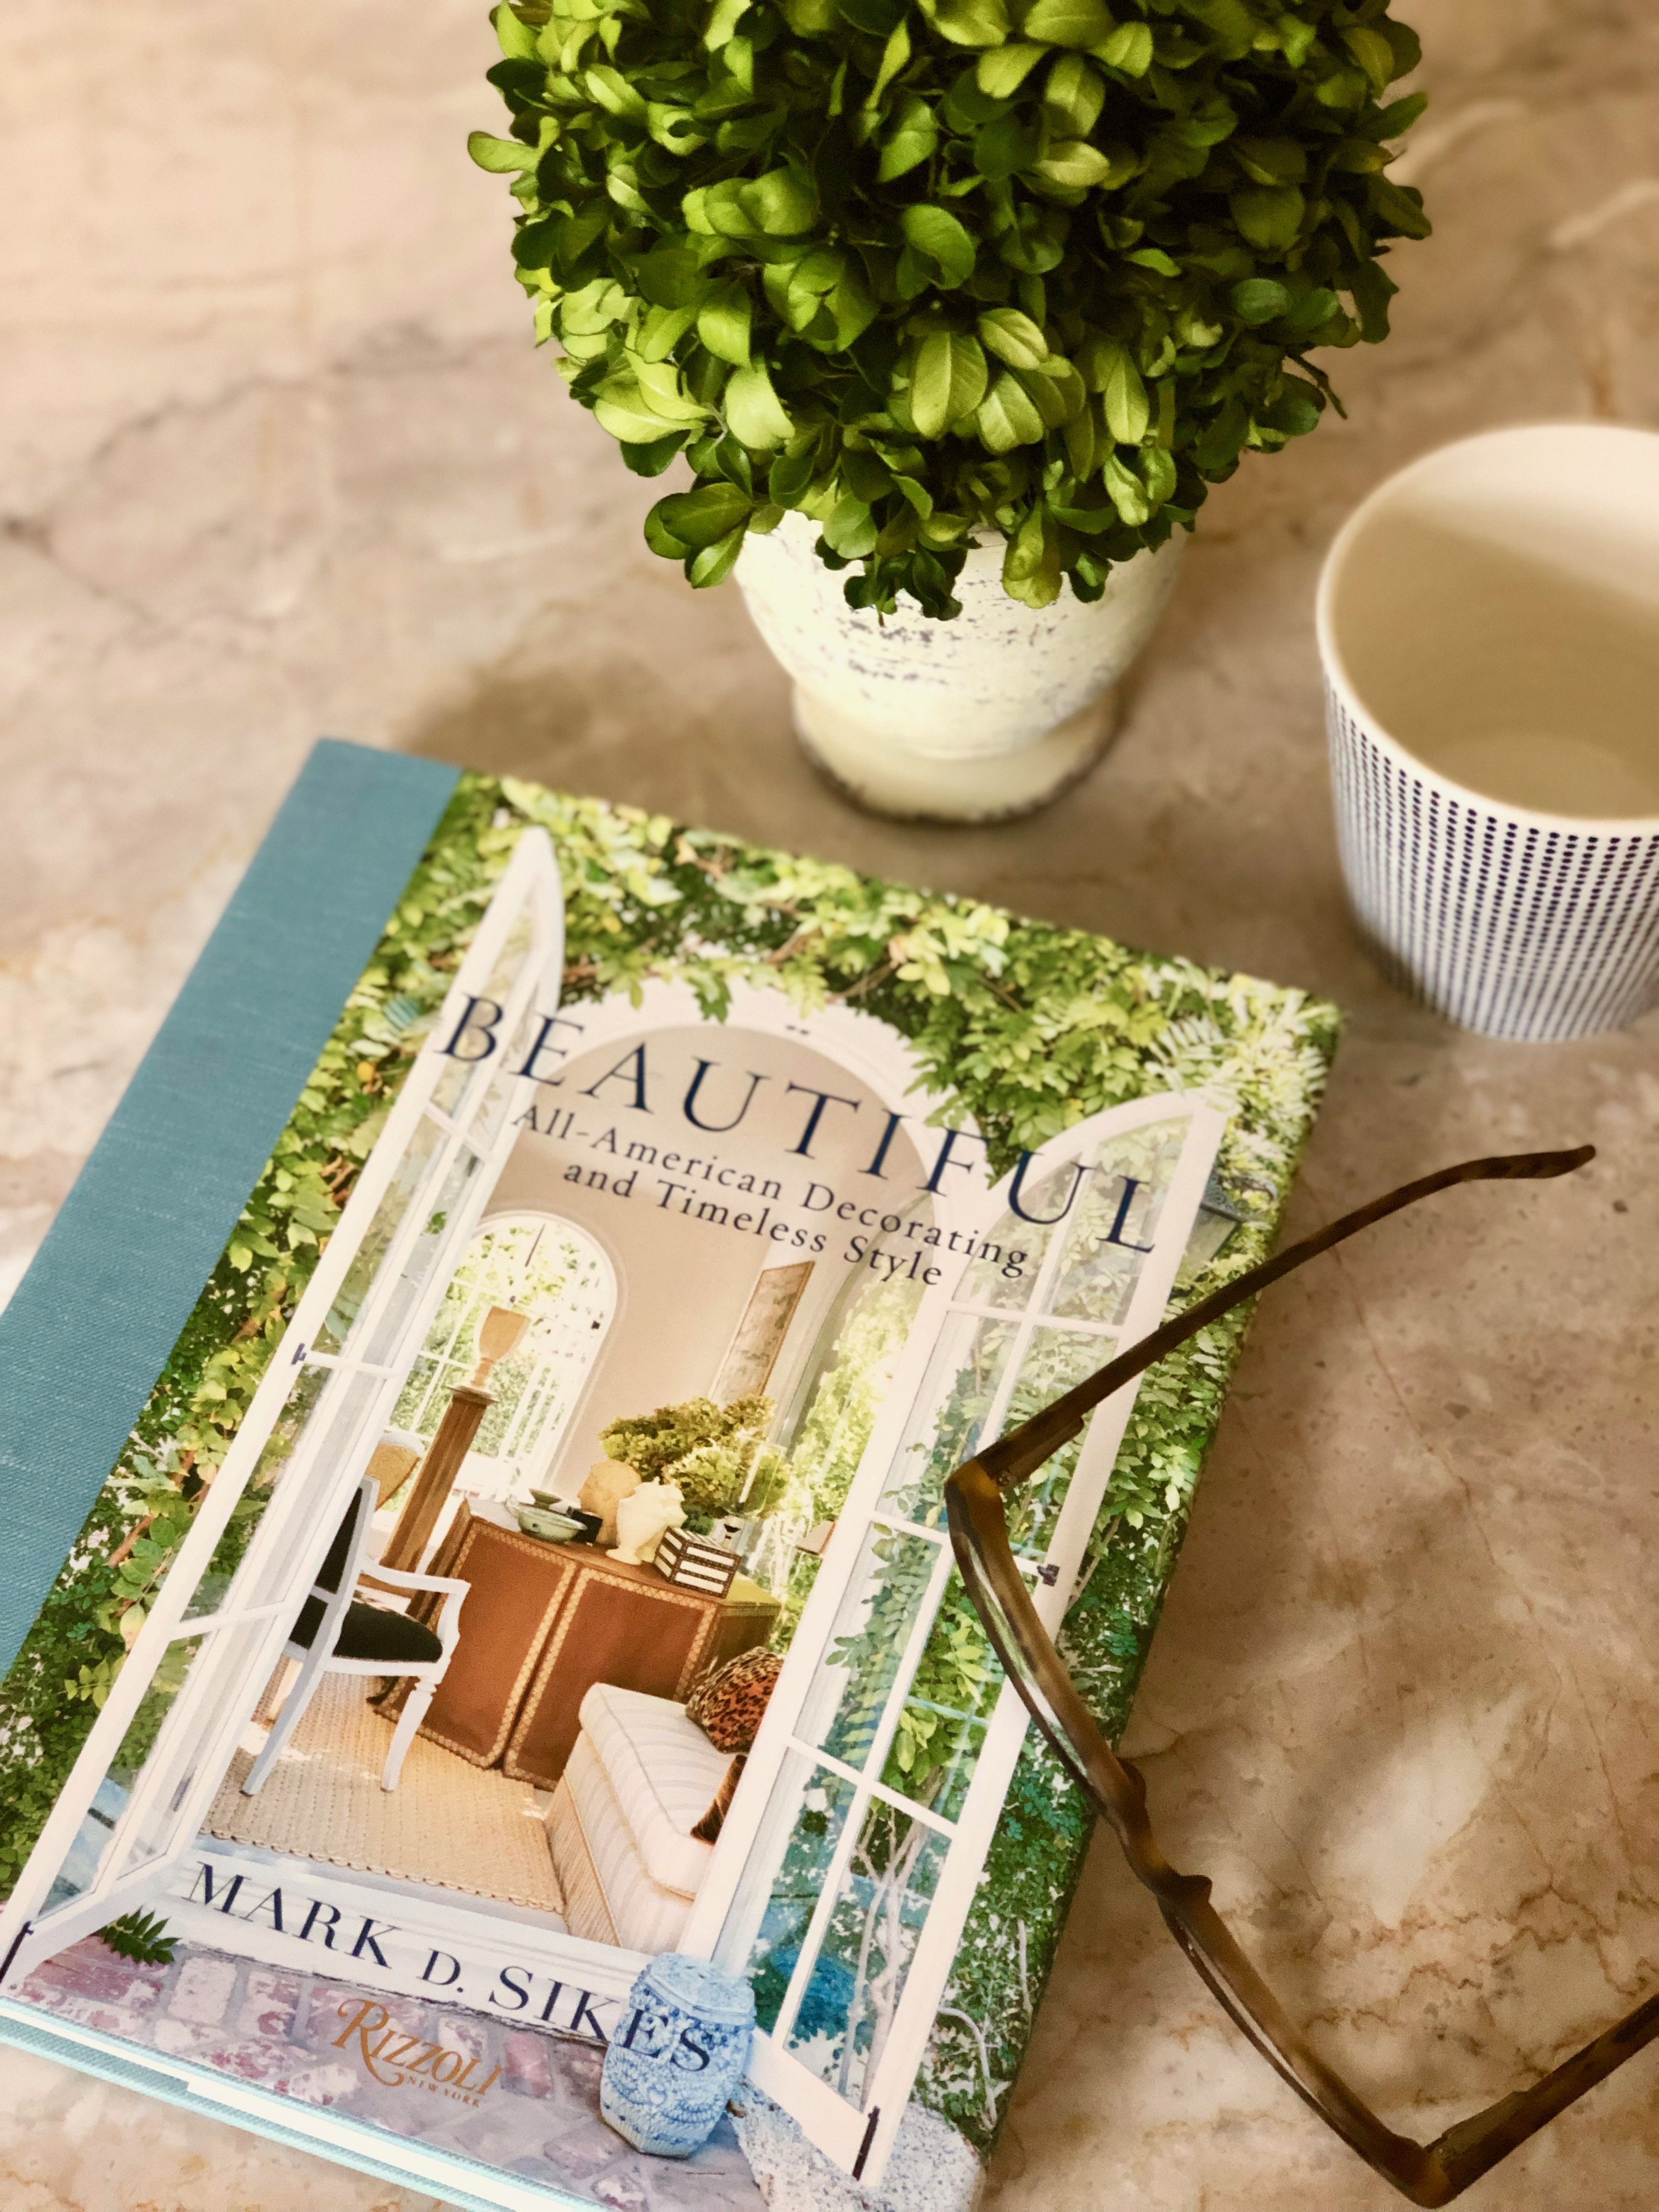 Mark D Sikes book Beautiful on our kitchen island with a cuppa and a small topiary